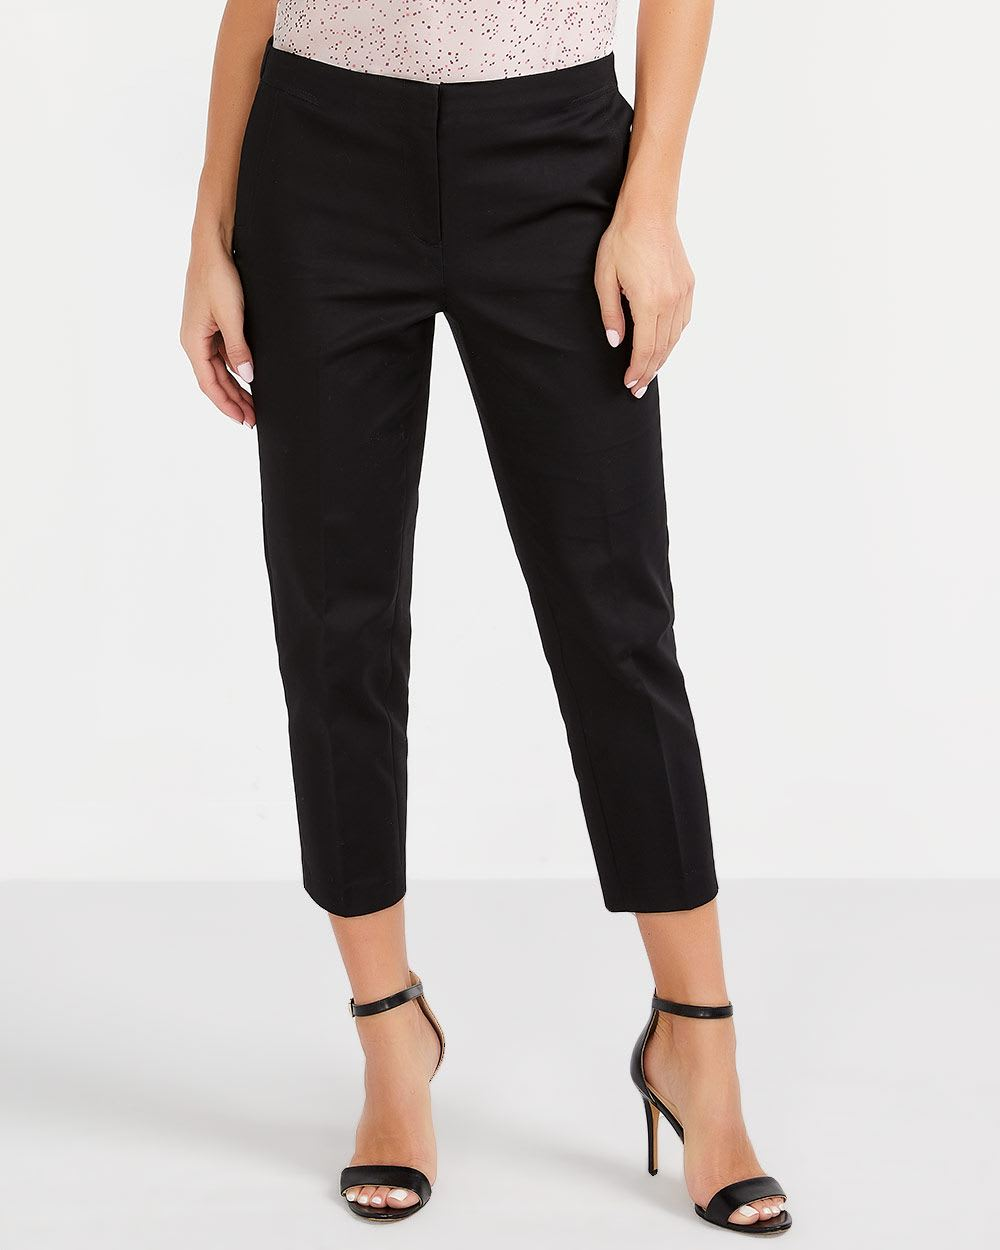 Willow & Thread Cotton Blend Cropped Pants